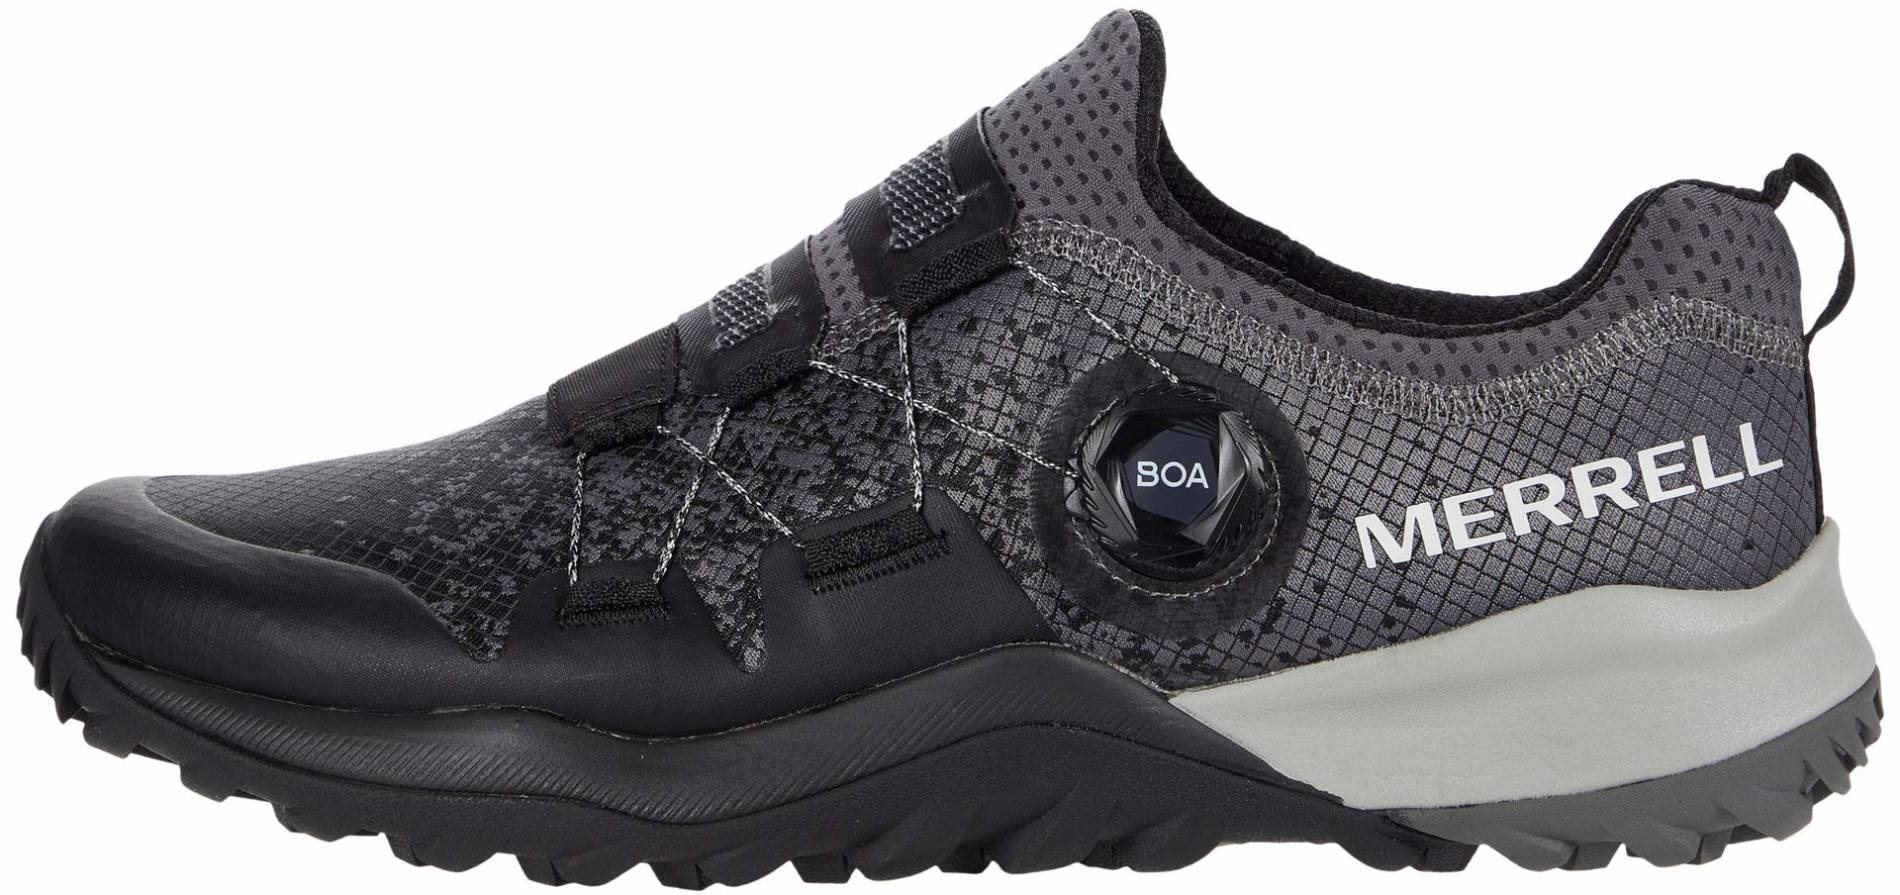 Save 26% on BOA Running Shoes (14